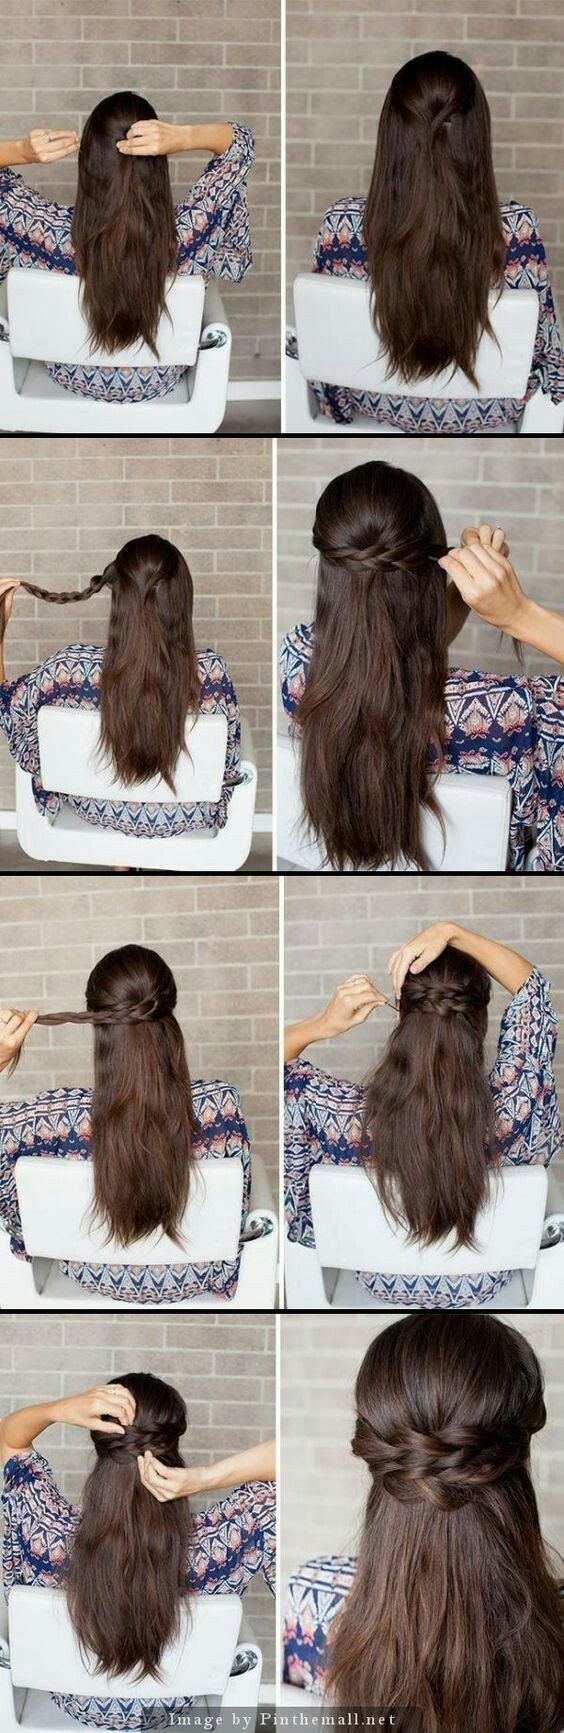 Find easy hairstyles for schools tutorials hairstyle ideas